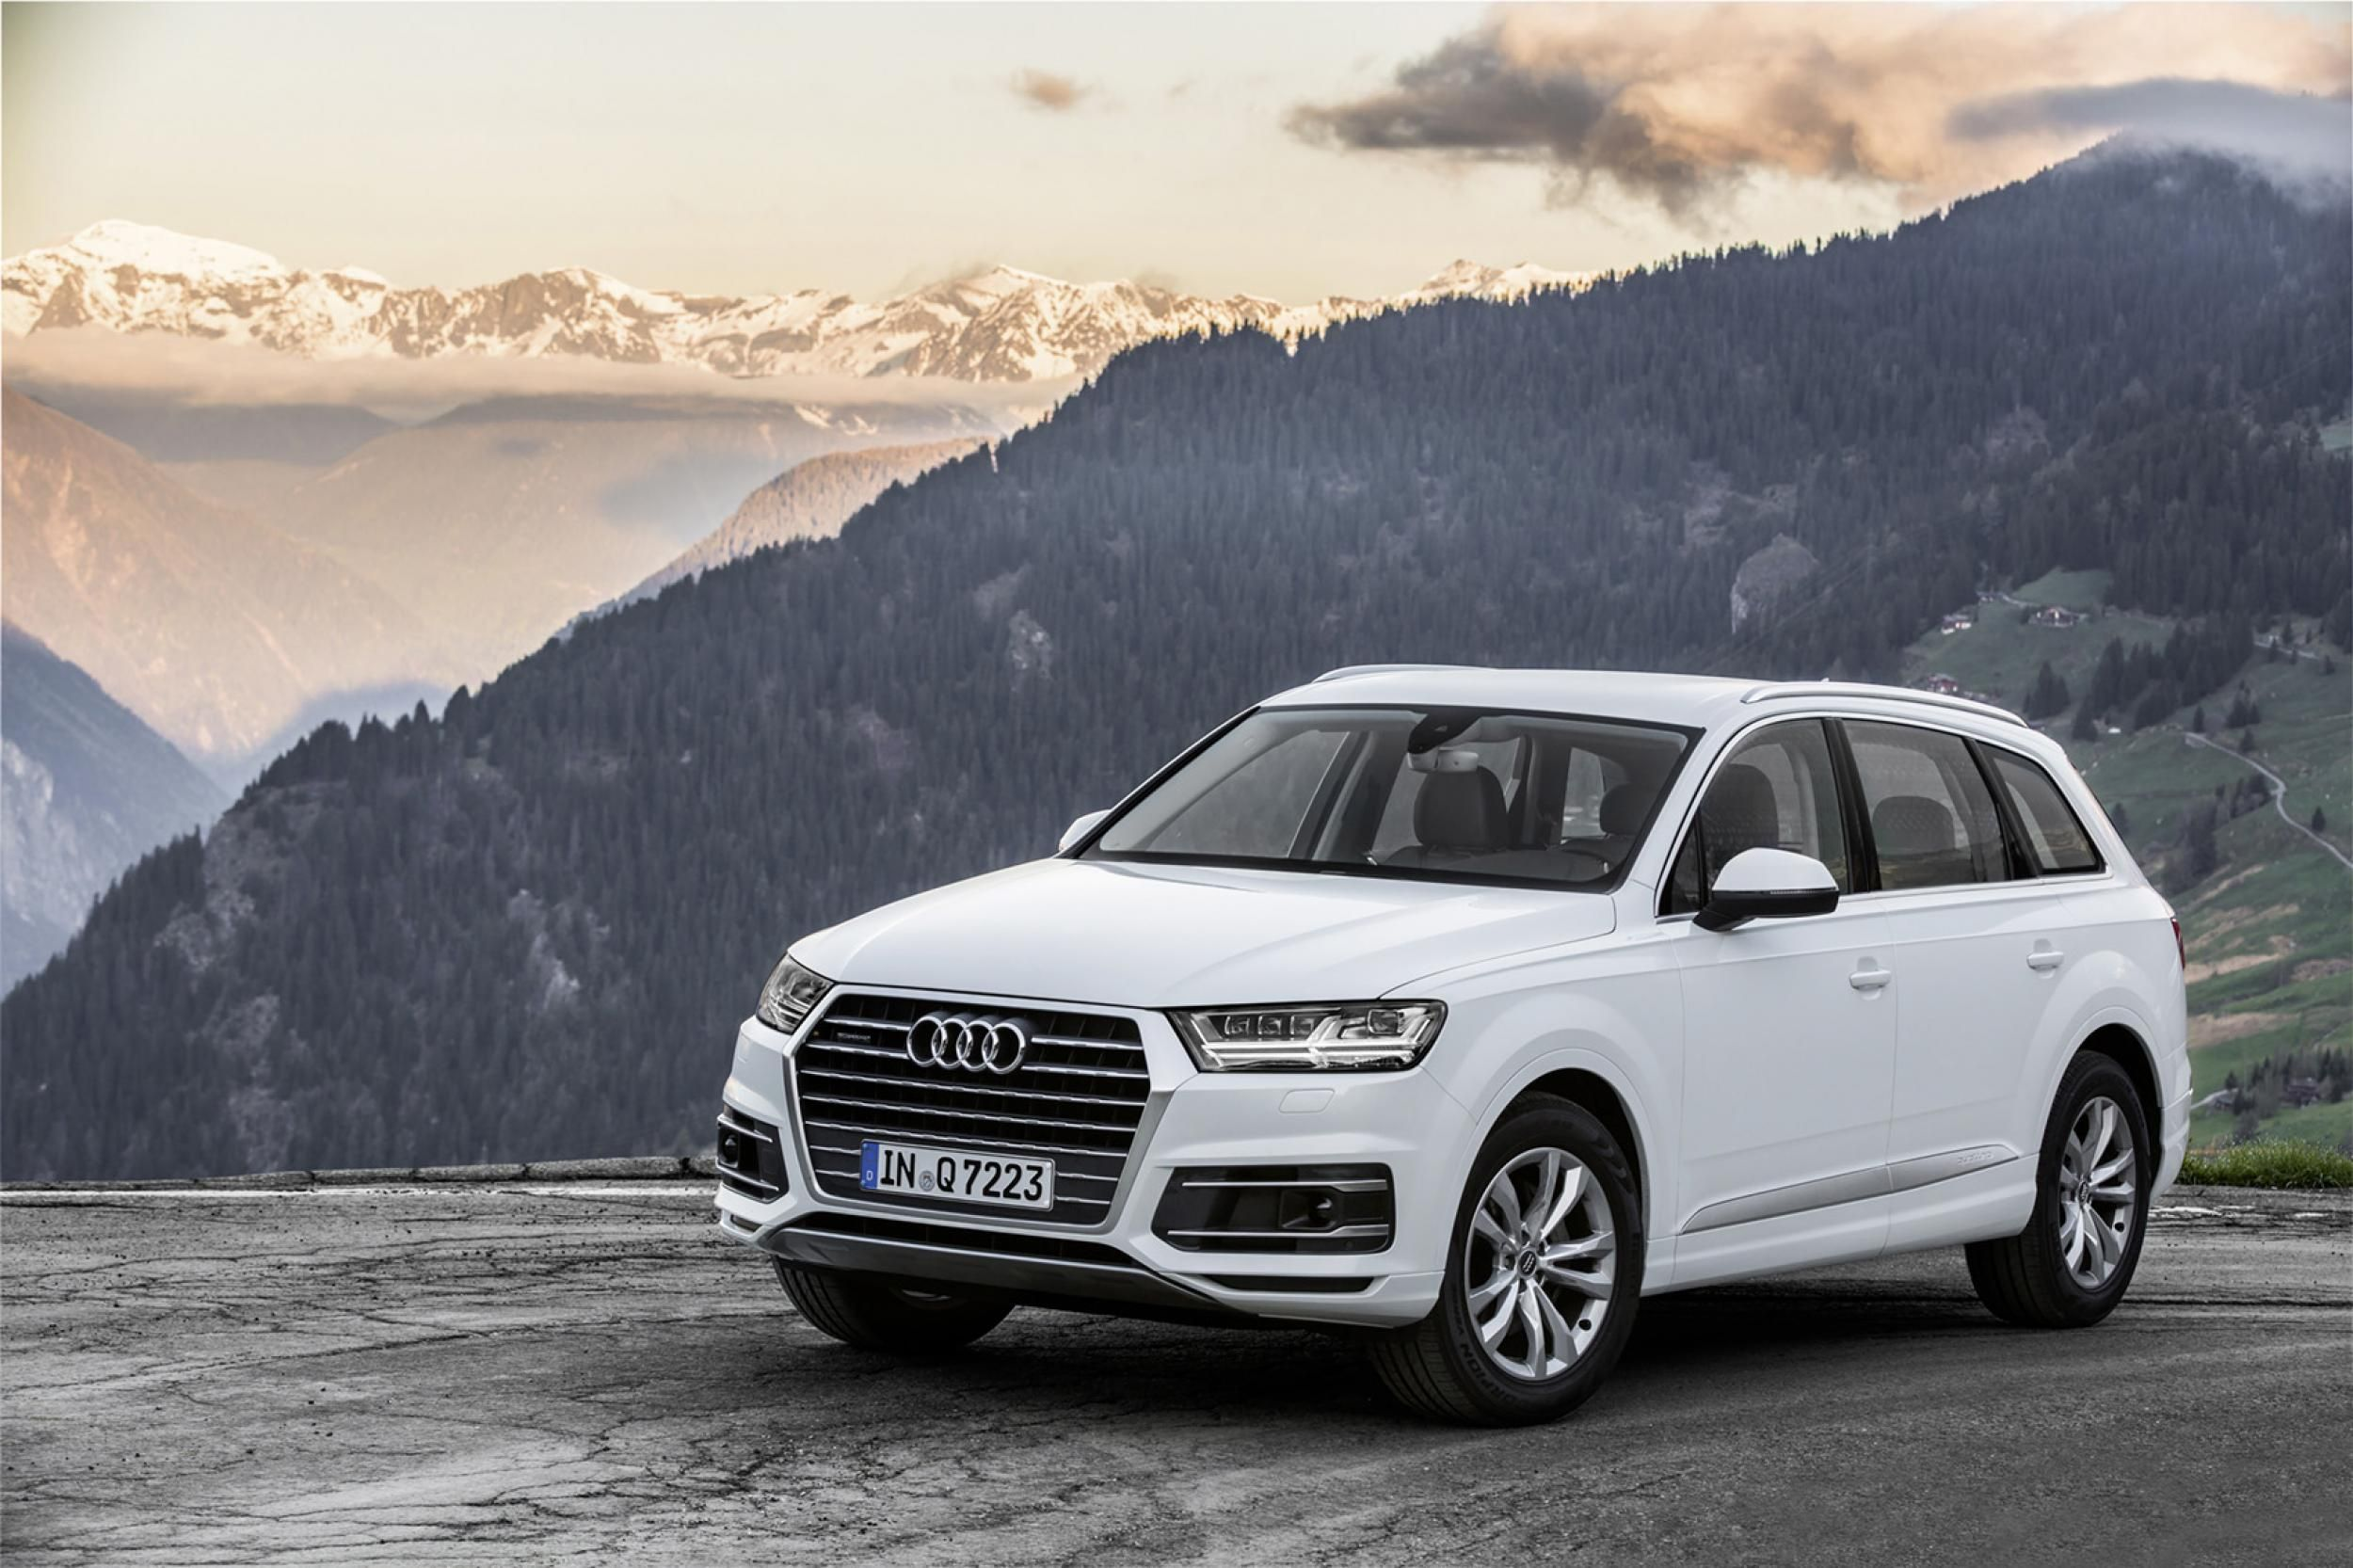 White 2017 Audi Q7 Wallpaper Audi Pinterest Audi Q7 Audi And